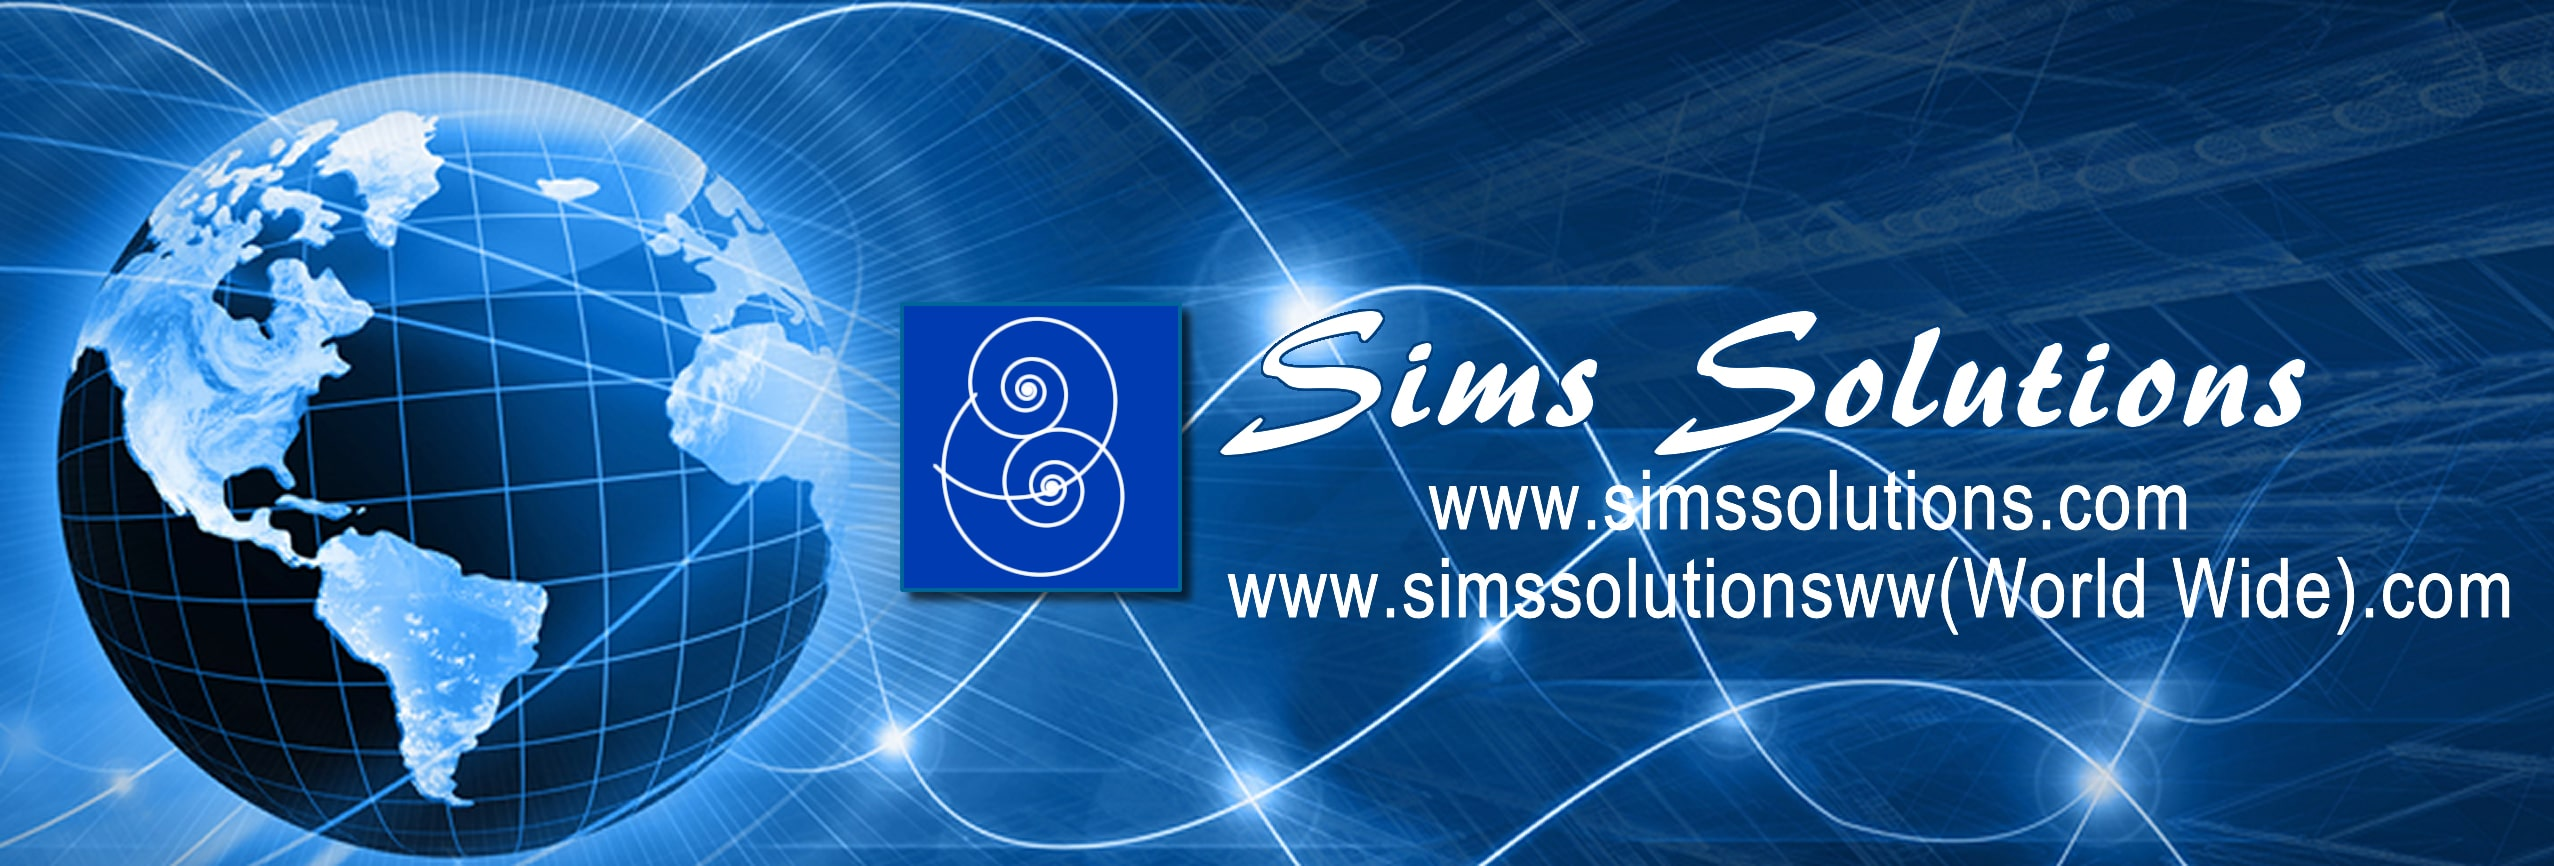 Web Design Company | Web Development | Graphic Artist | www.simssolutions.com | www.simssolutionsww.com